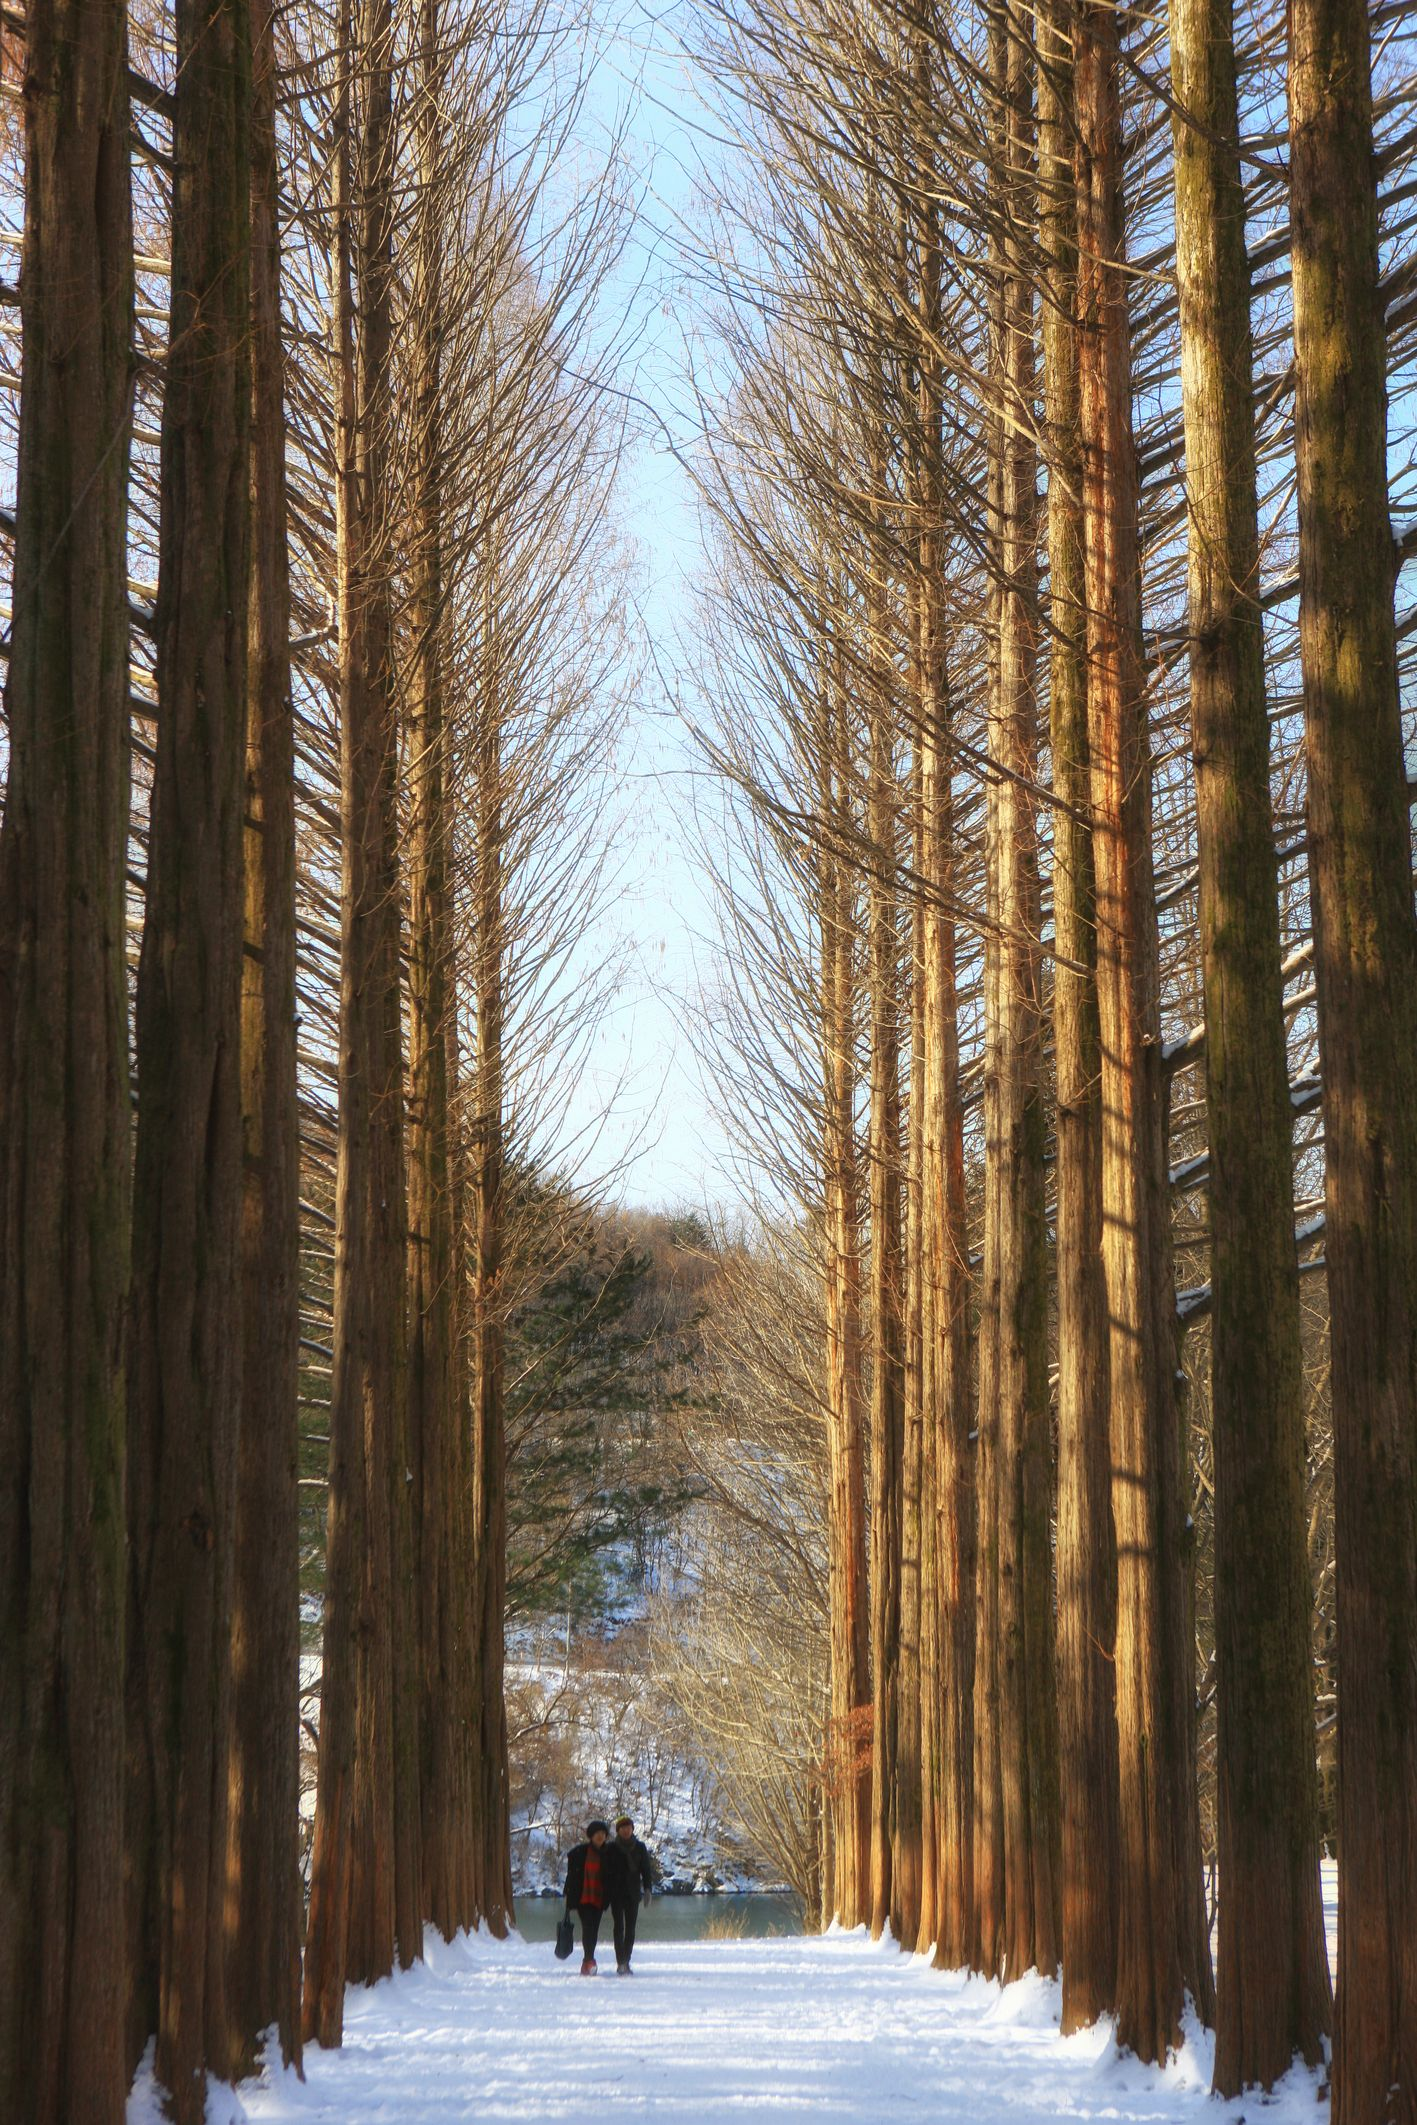 The Metasequoia Lane Is The Most Famous Spot On Nami Island Autumn And Winter Are The Best Season To Enjoy The Tree Lined Roads On The Island